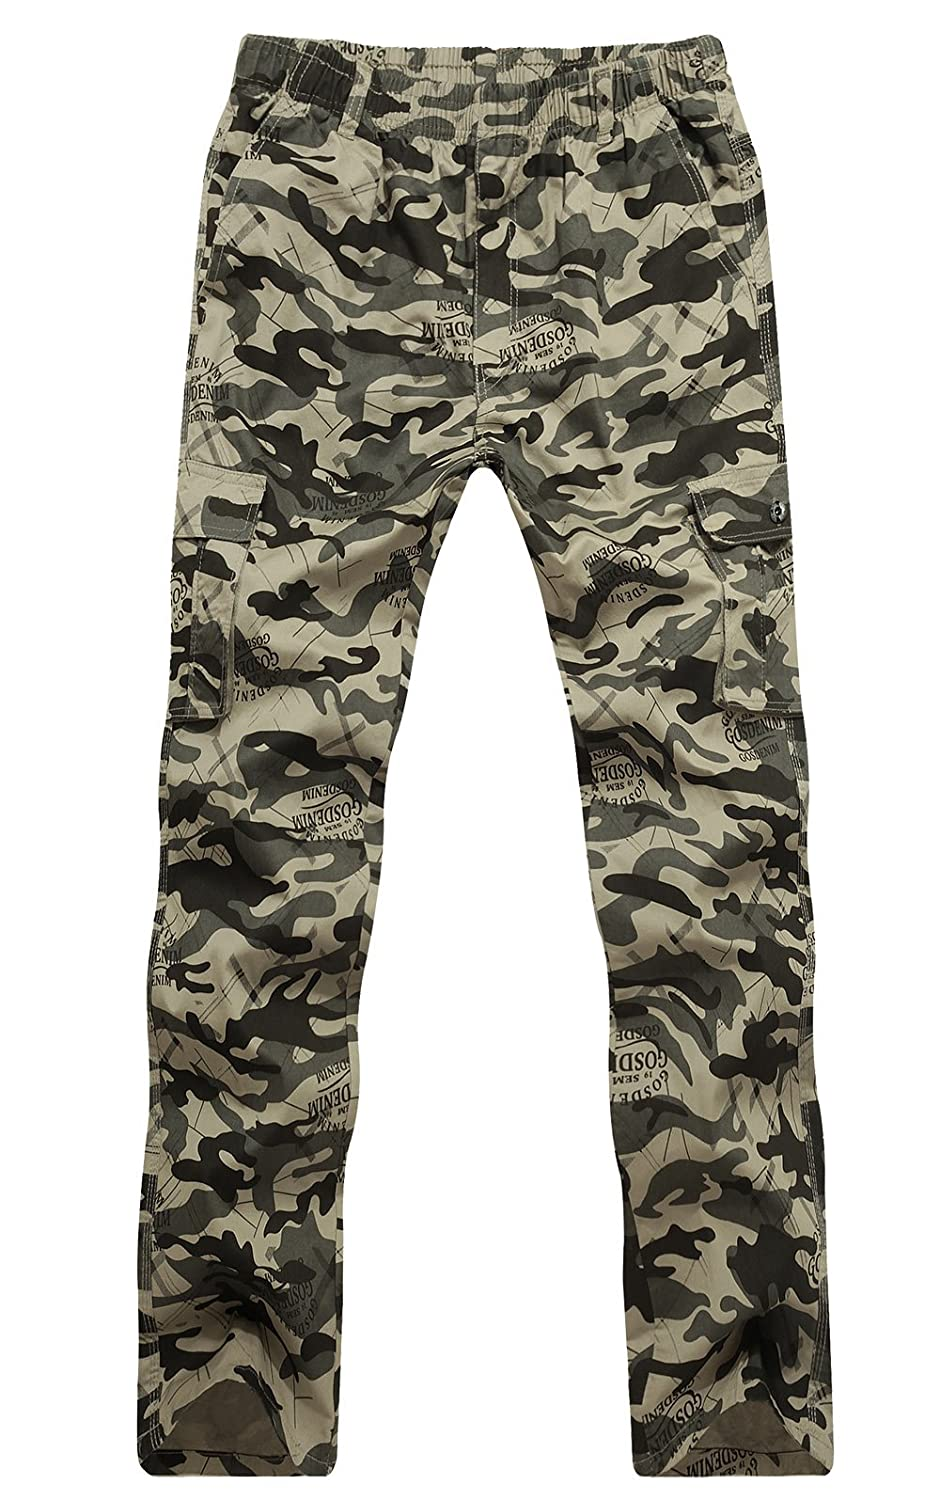 Men's Camo Relaxed Fit Straight Leg Wild Cargo Pants CardanWolf